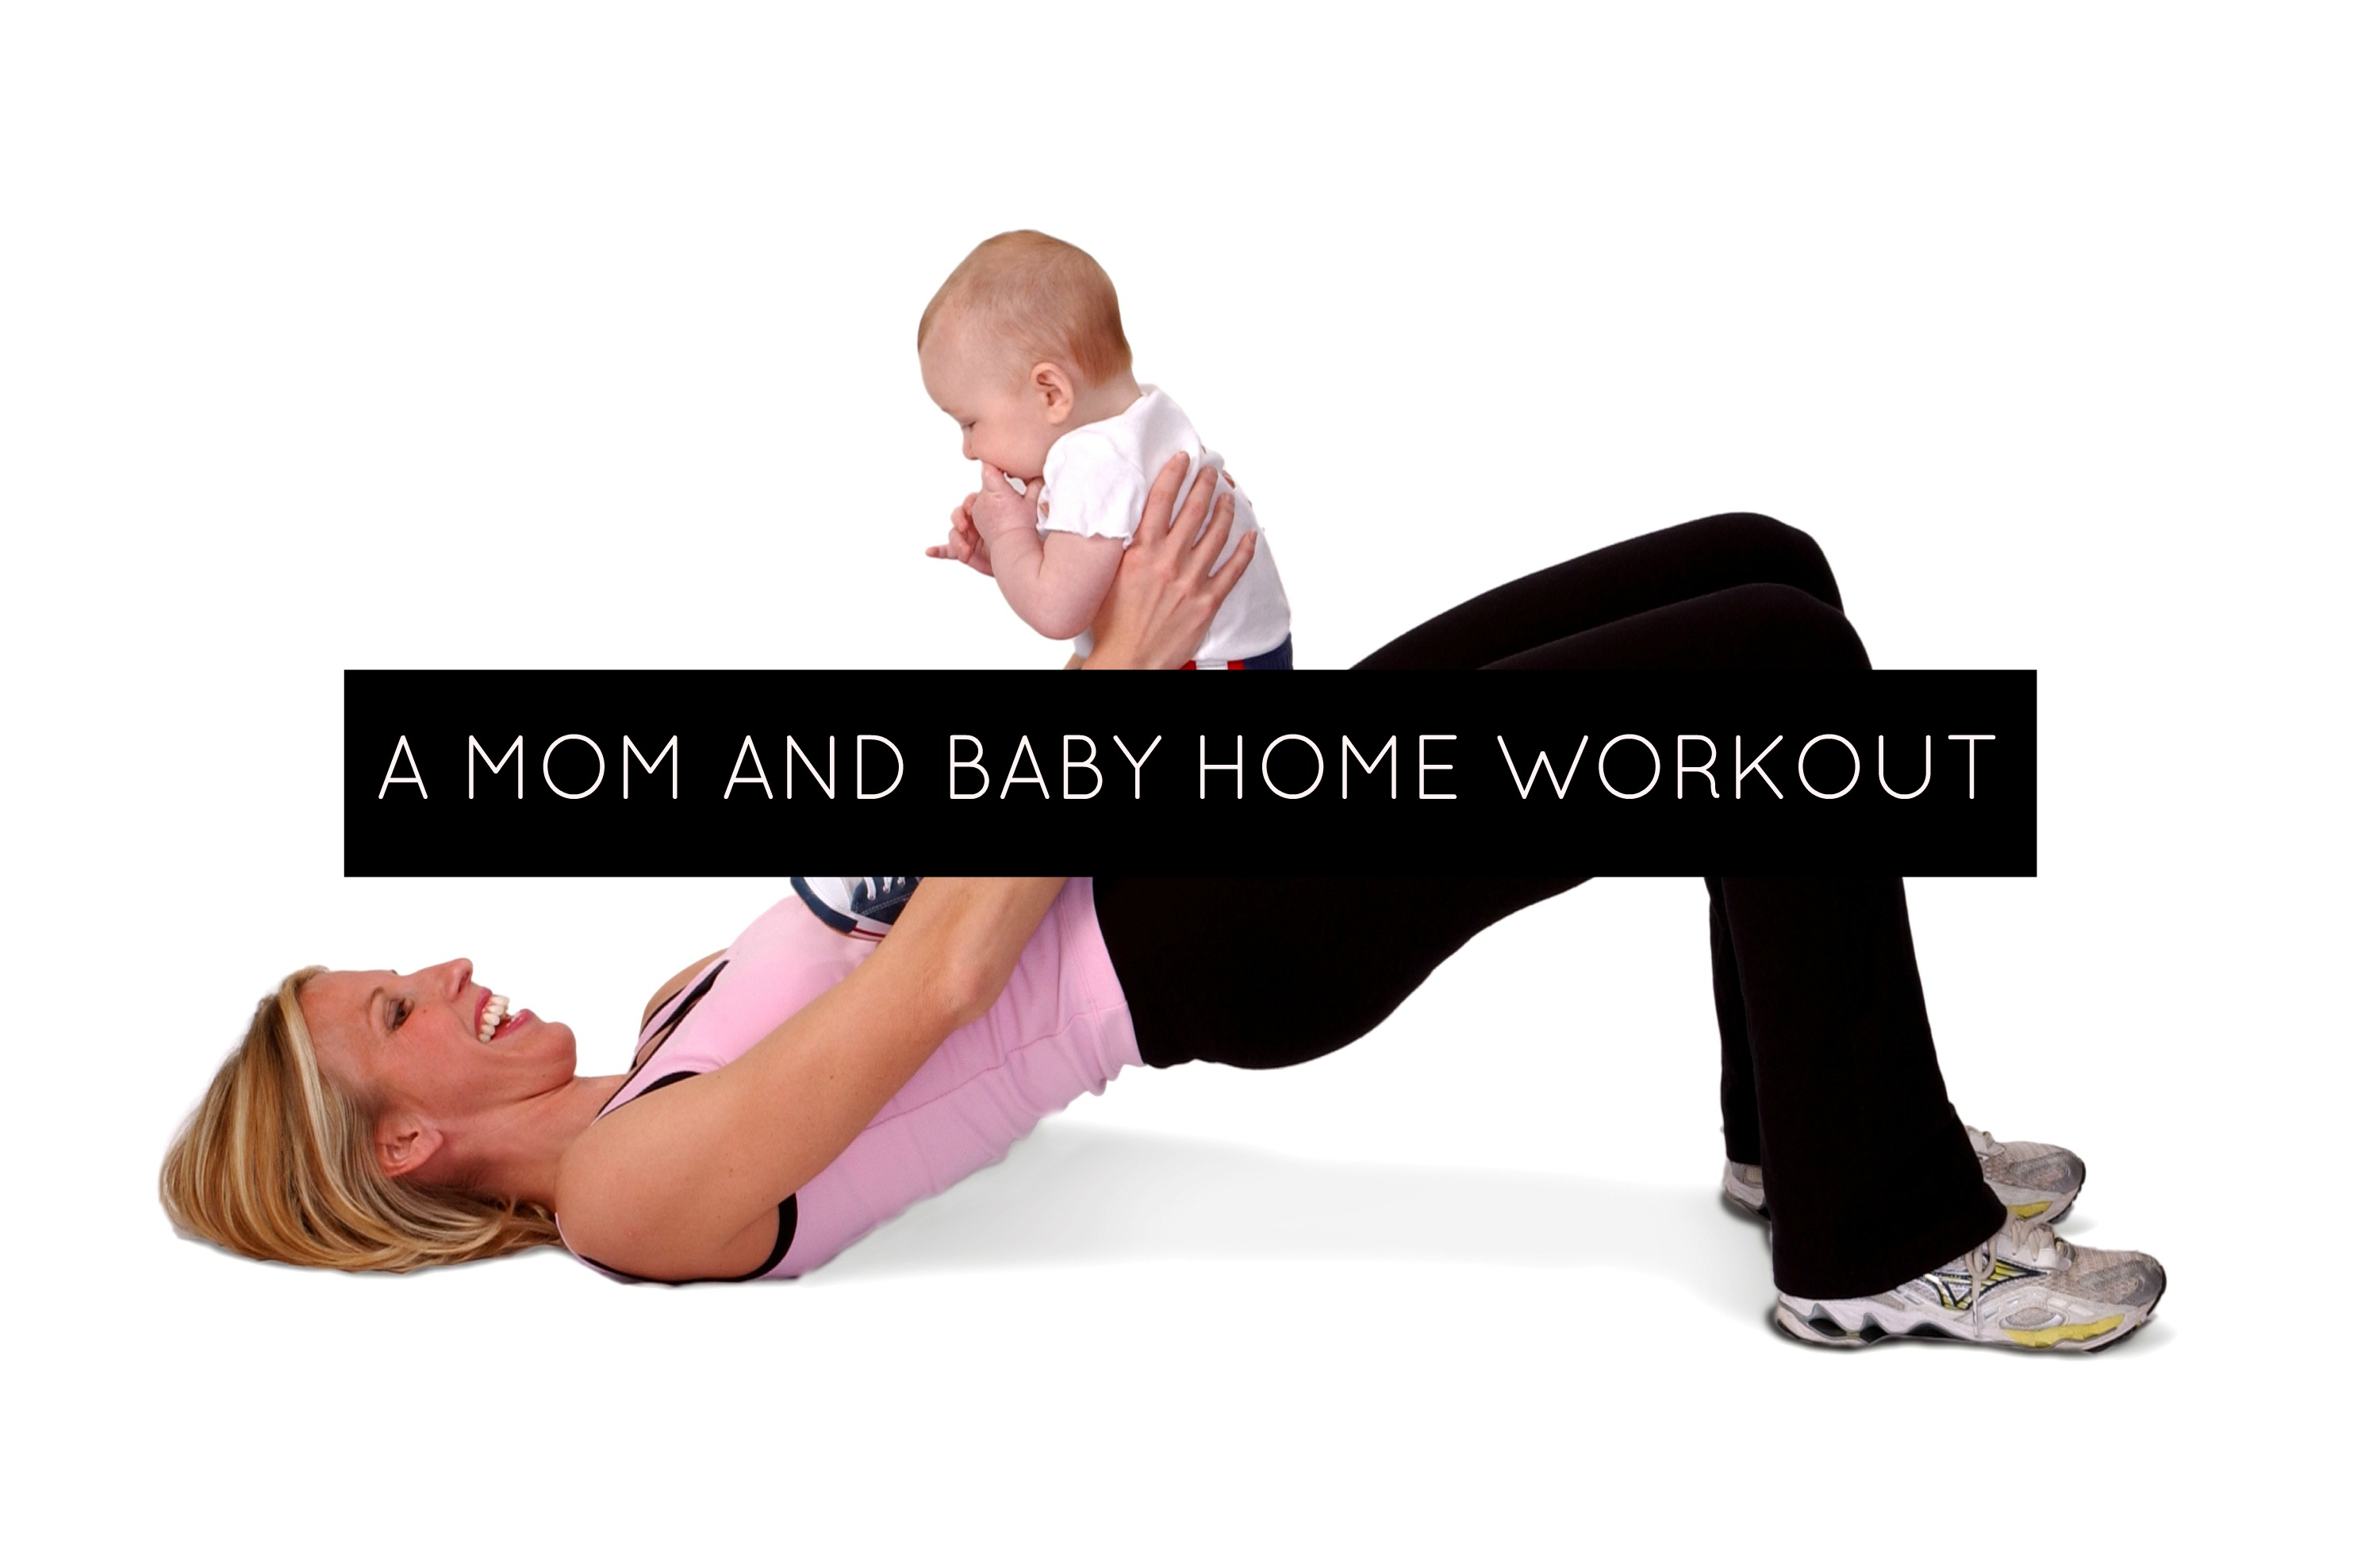 A Mom and Baby Home Workout